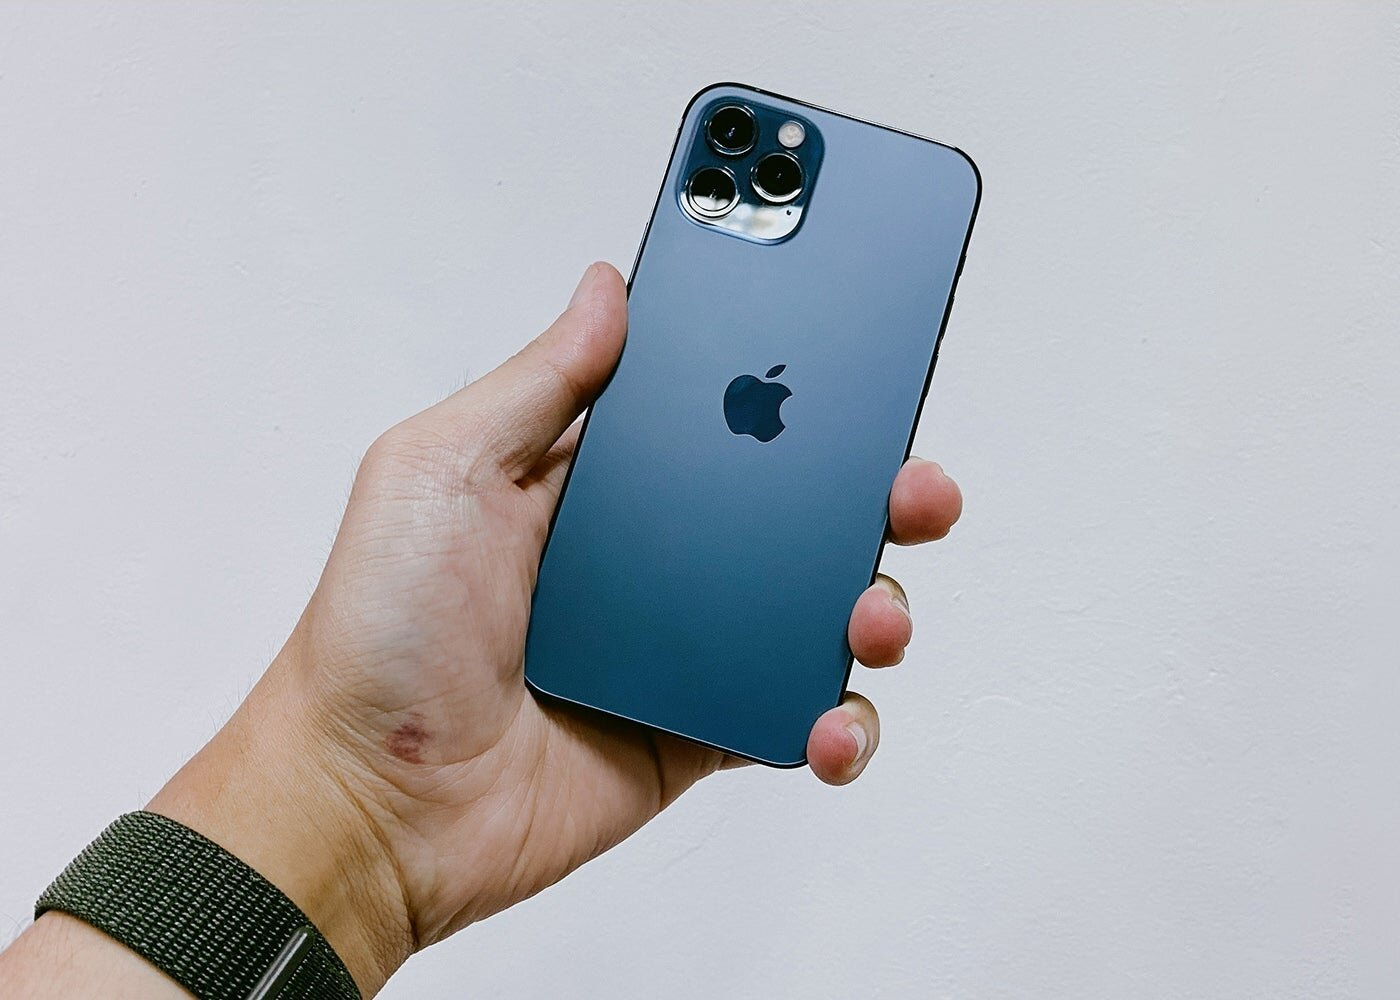 Top 3 Reasons Why iPhone Users Are Switching To Android